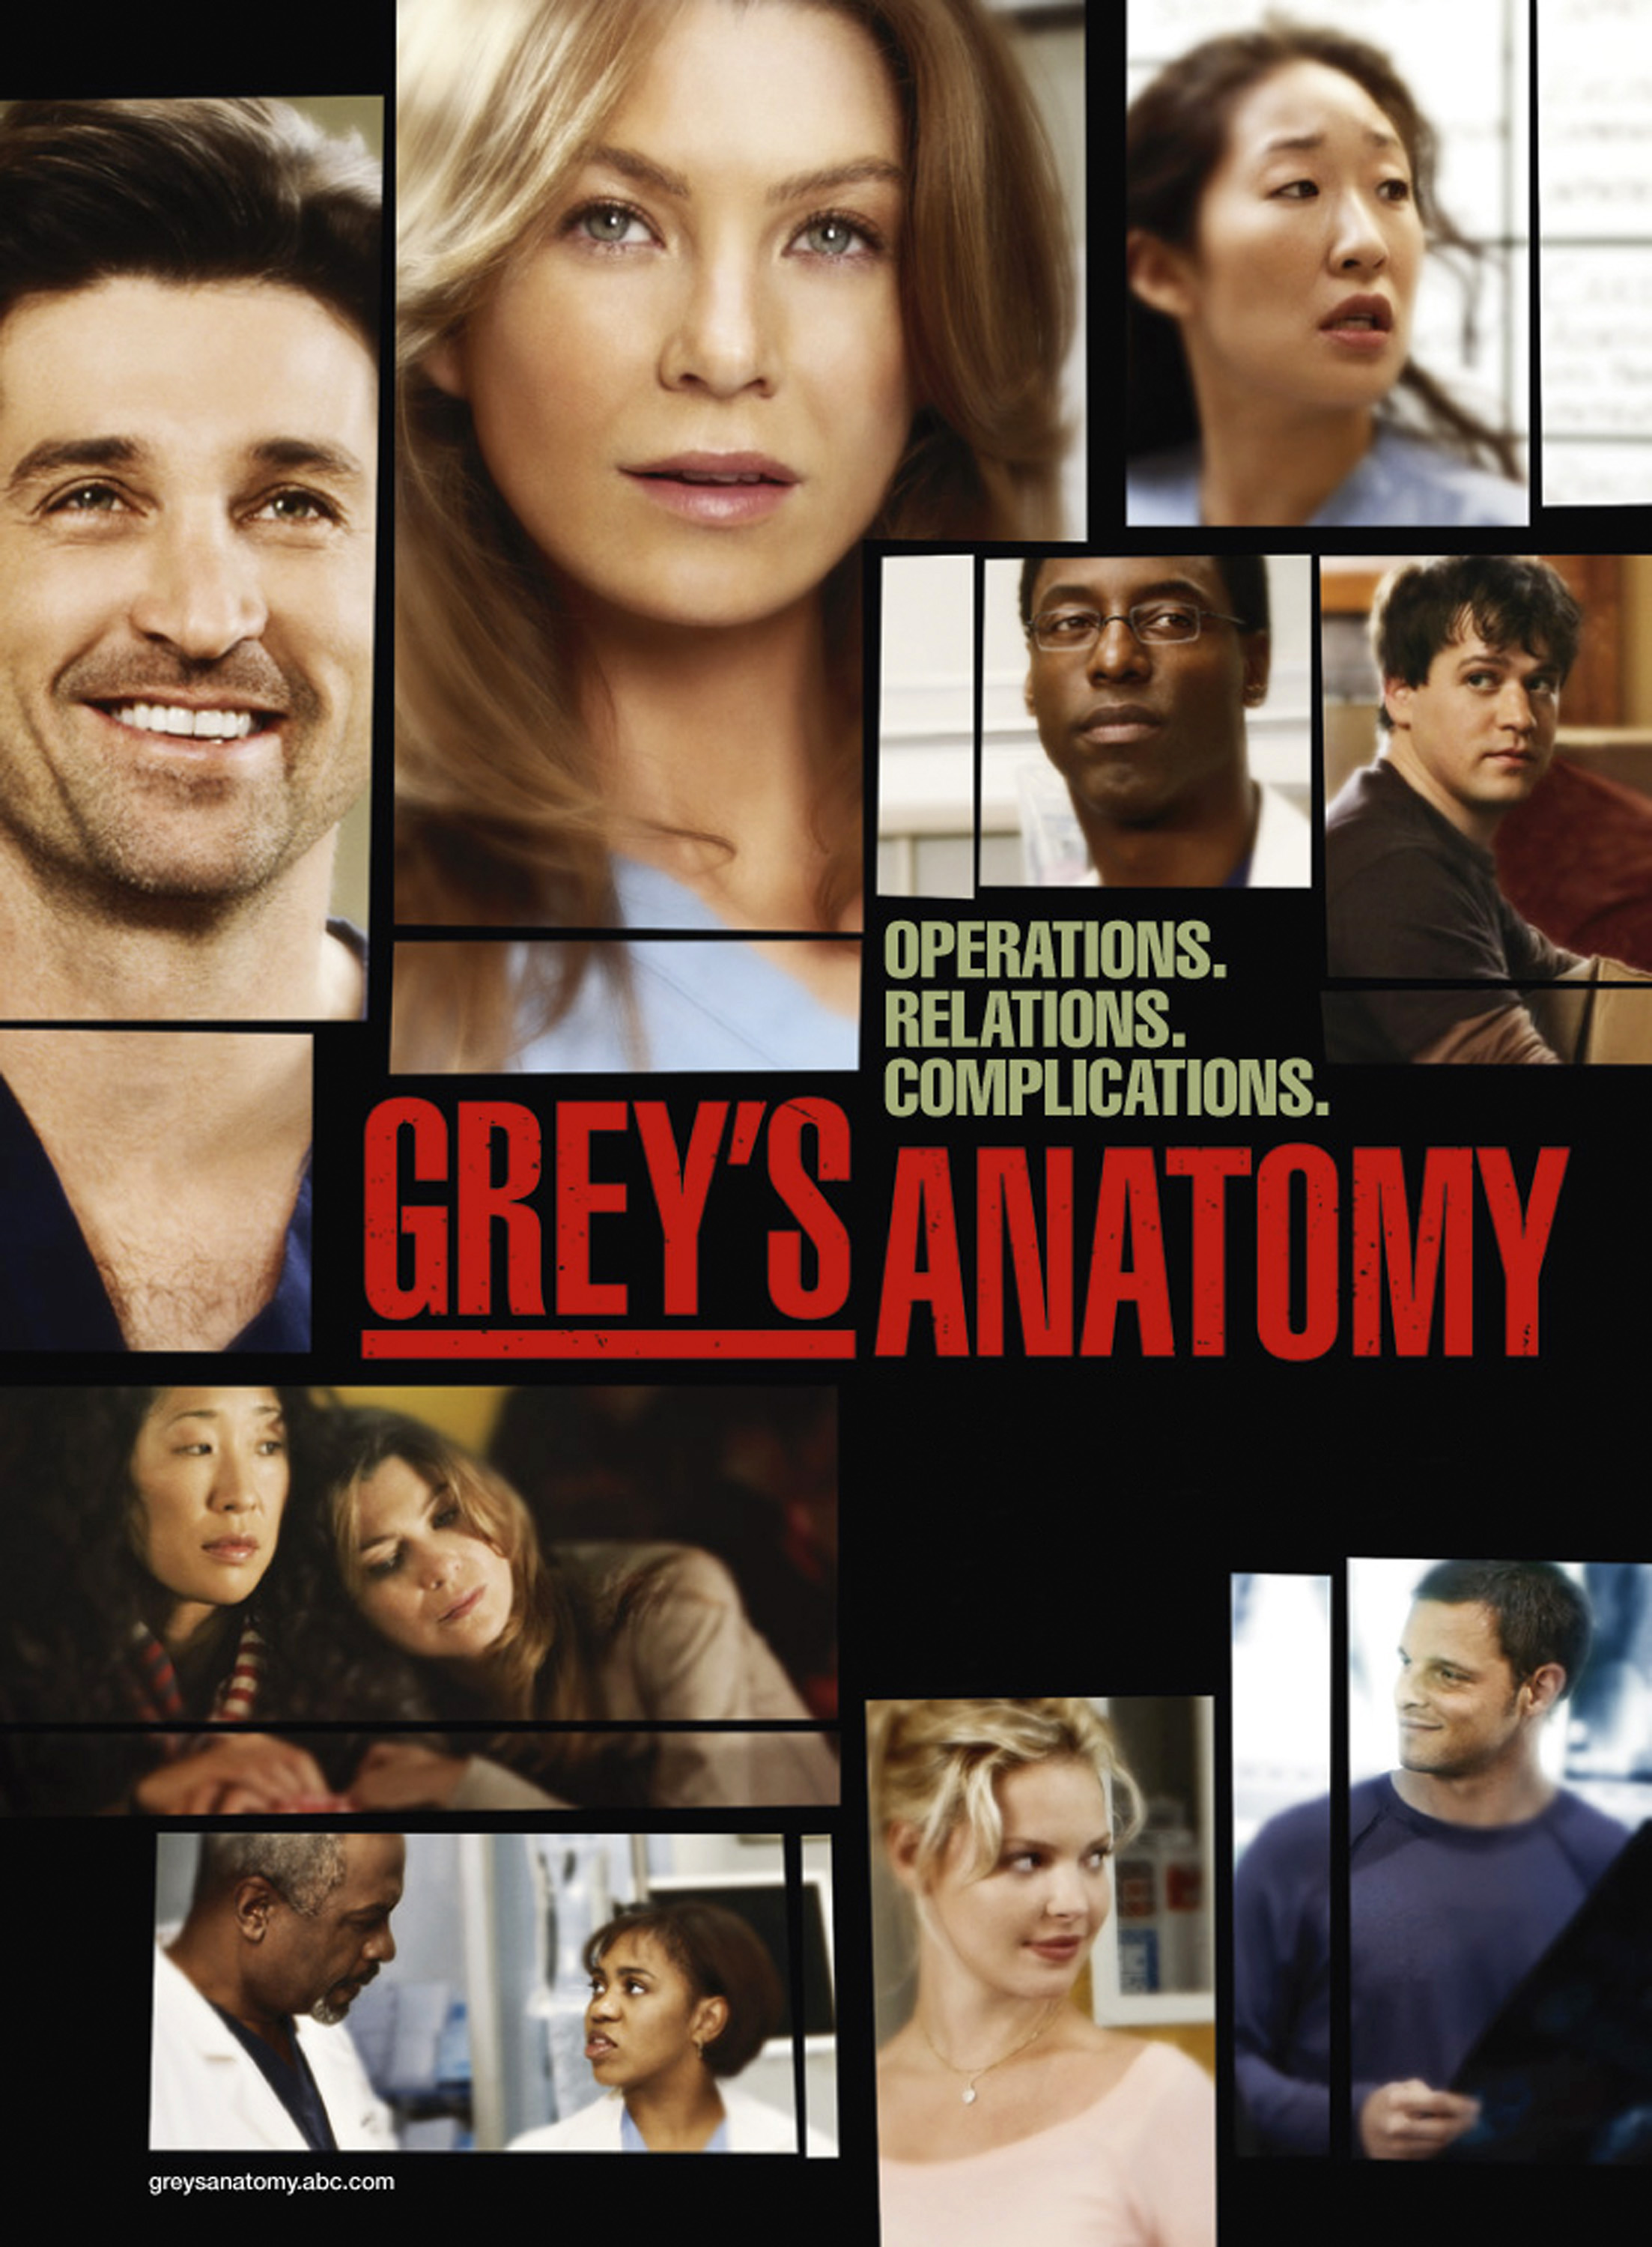 greys anatomy season 1 episode 2 Visit tunefind for music from your favorite tv shows and movies all 57 songs featured in grey's anatomy season 1, listed by episode with grey's anatomy.